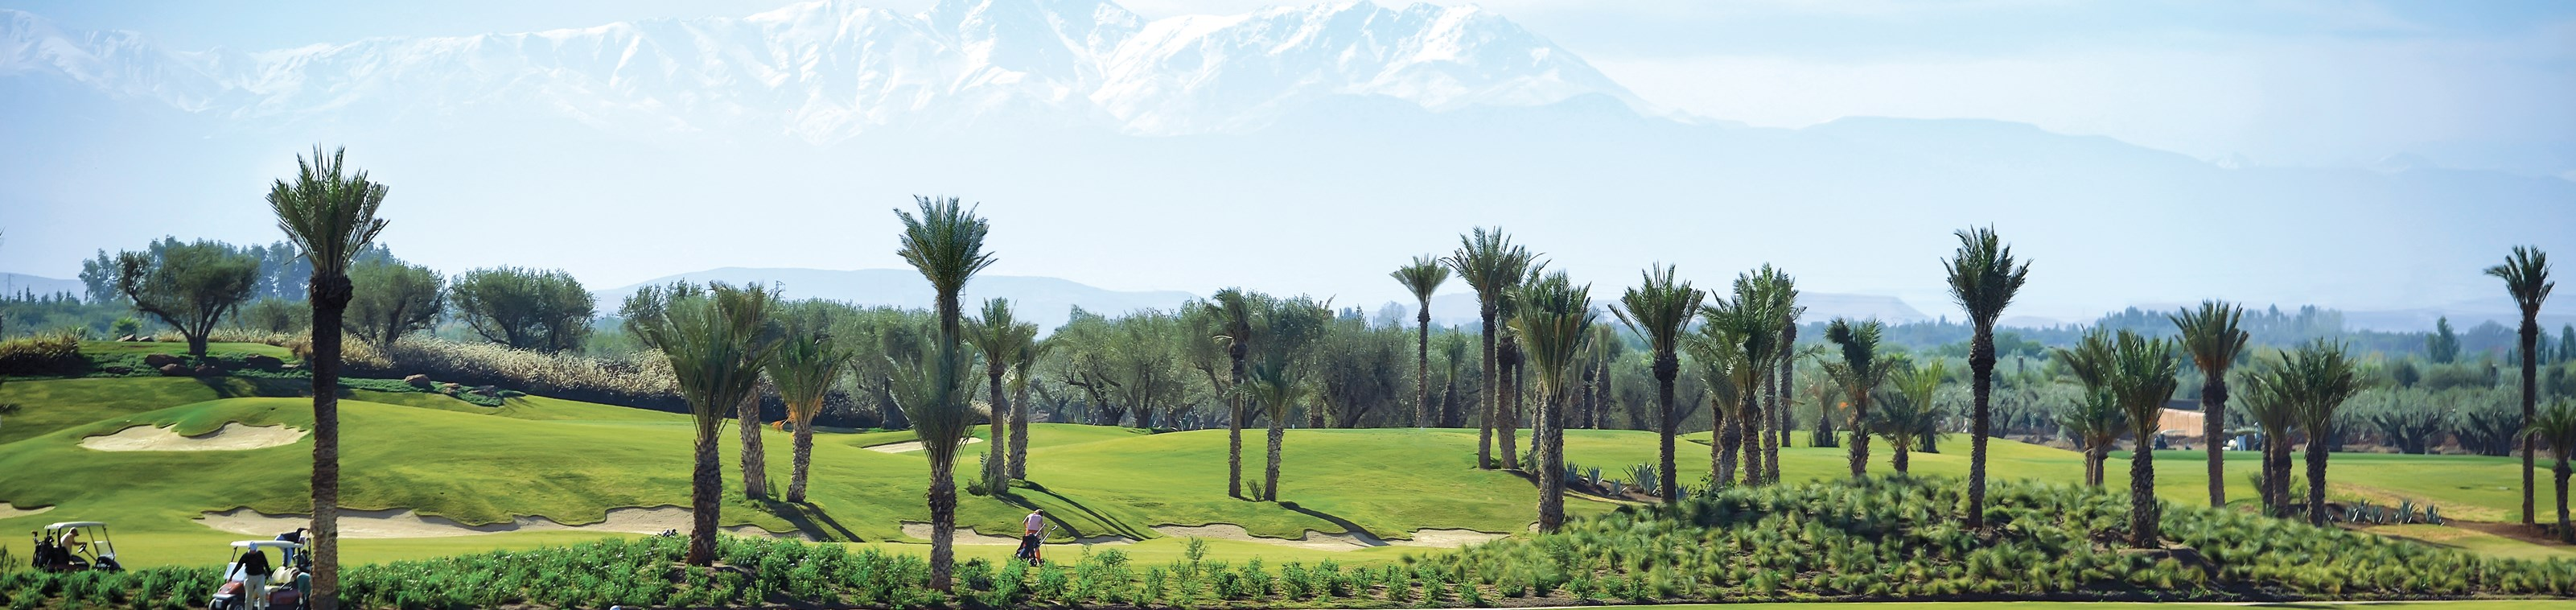 Fairmont Royal Palm Marrakech 5* Grand Luxe